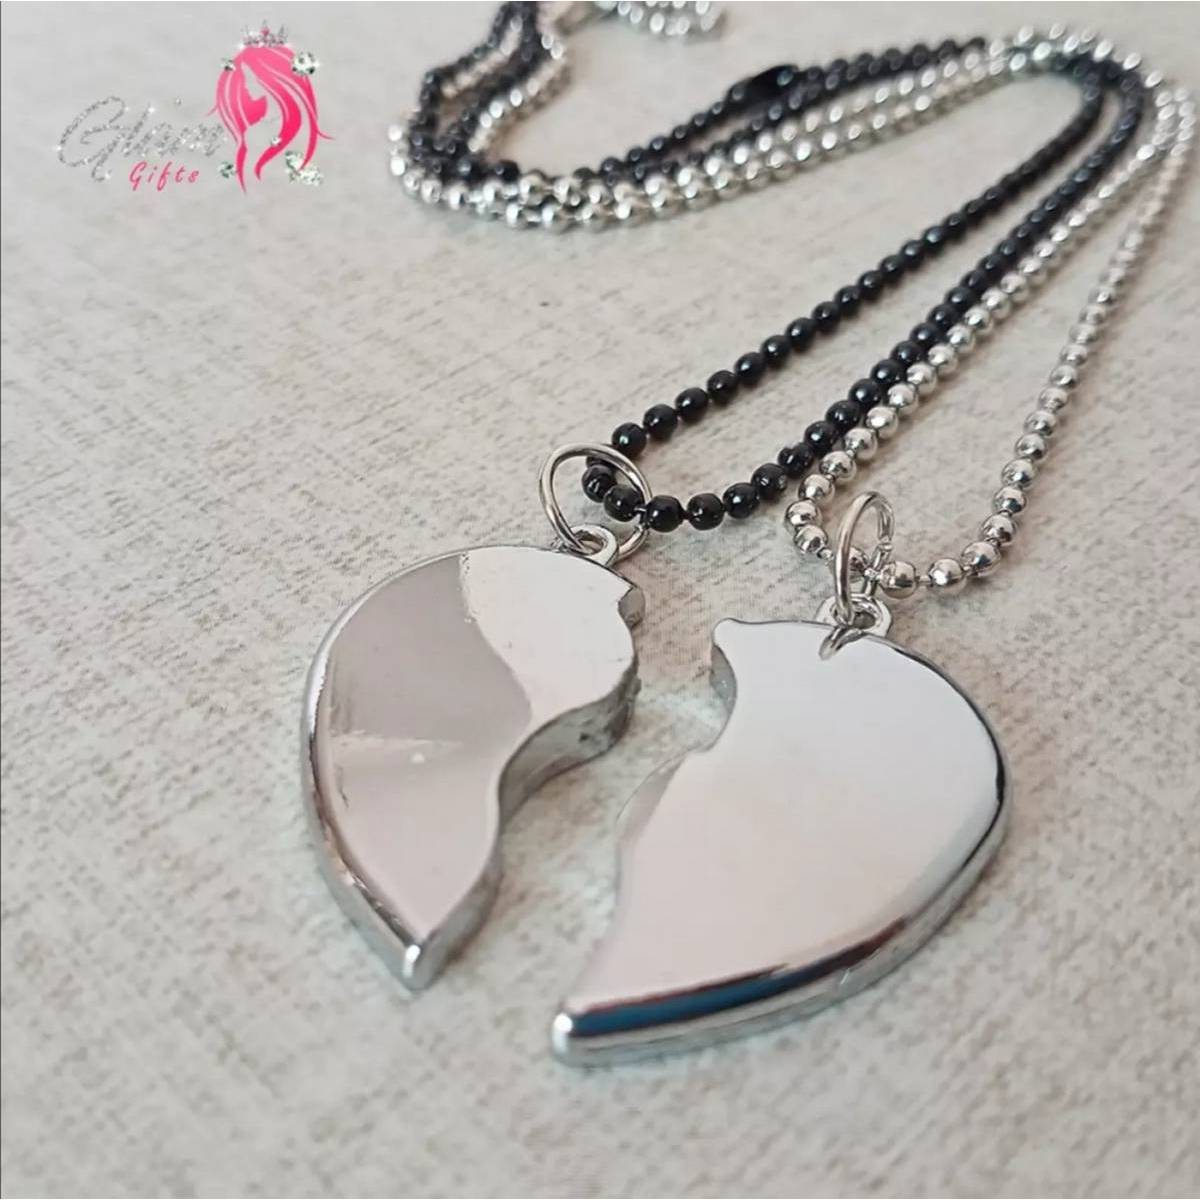 Heavy Silver Magnetic Broken Heart Necklace Locket - Heavy Metal Magnetic Heart Pendant Necklace Gift For Friends Couples